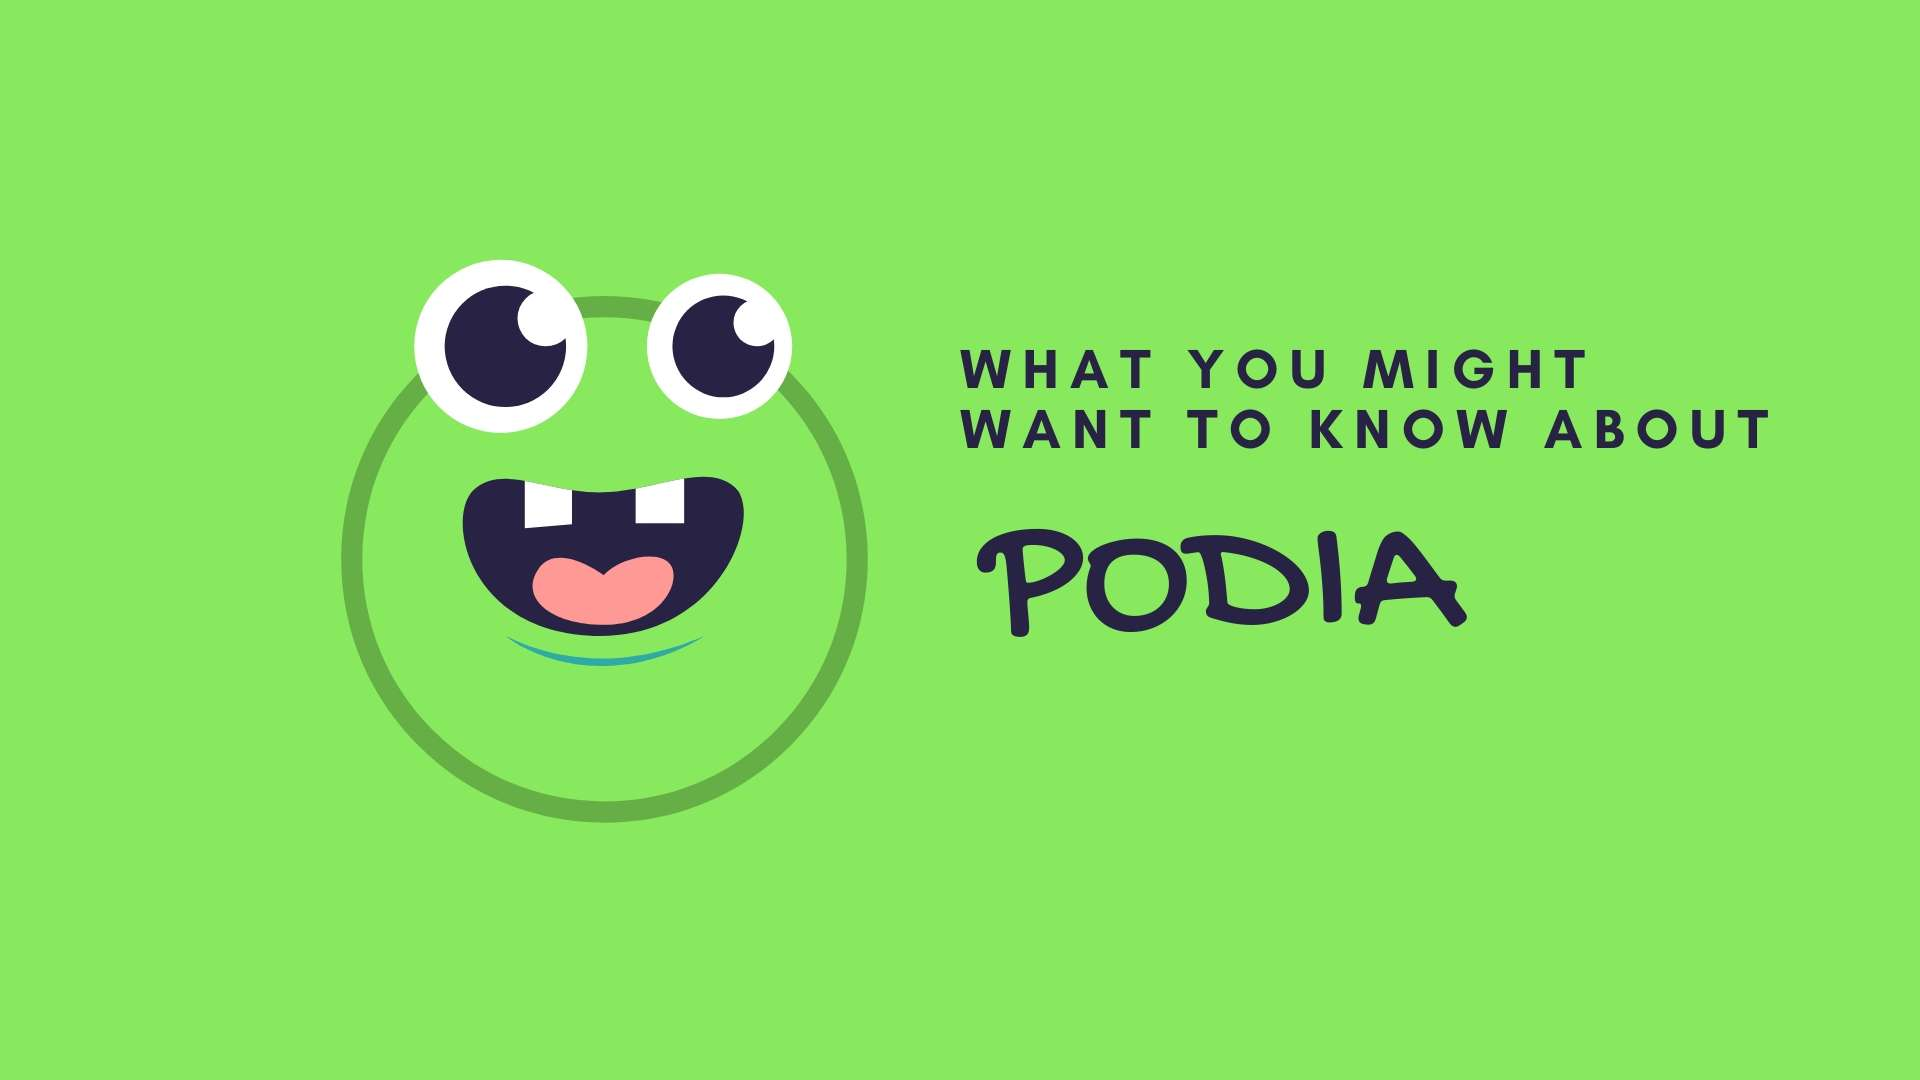 Podia - video review and experience